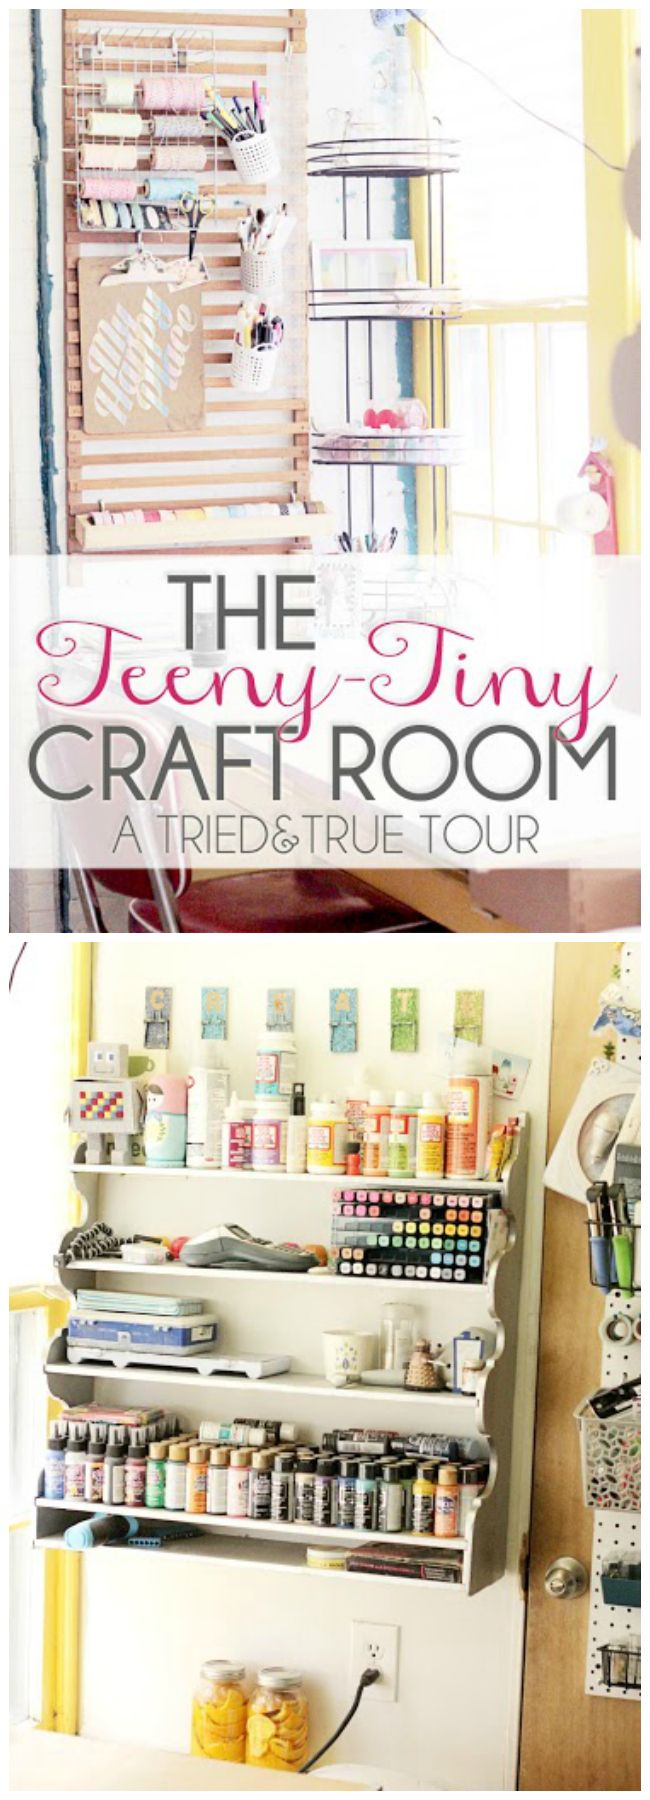 Amazing small craft room with lots of storage ideas. Love how she organizes her bakers twine!